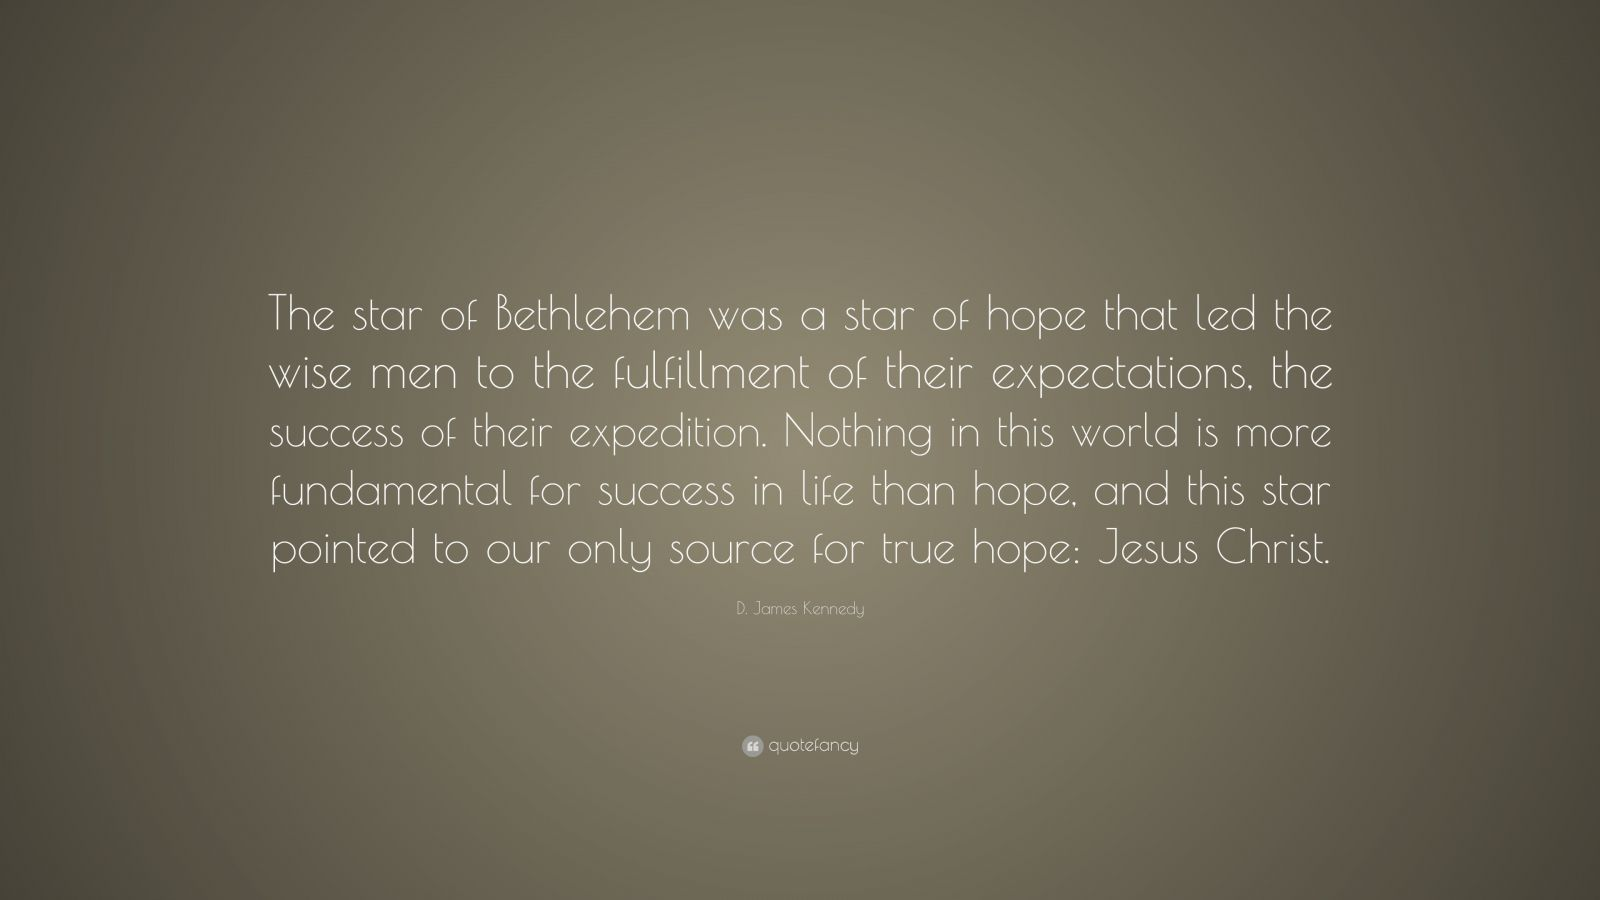 "D. James Kennedy Quote: ""The star of Bethlehem was a star of hope that led the wise men to the fulfillment of their expectations, the success of their expedition. Nothing in this world is more fundamental for success in life than hope, and this star pointed to our only source for true hope: Jesus Christ."""